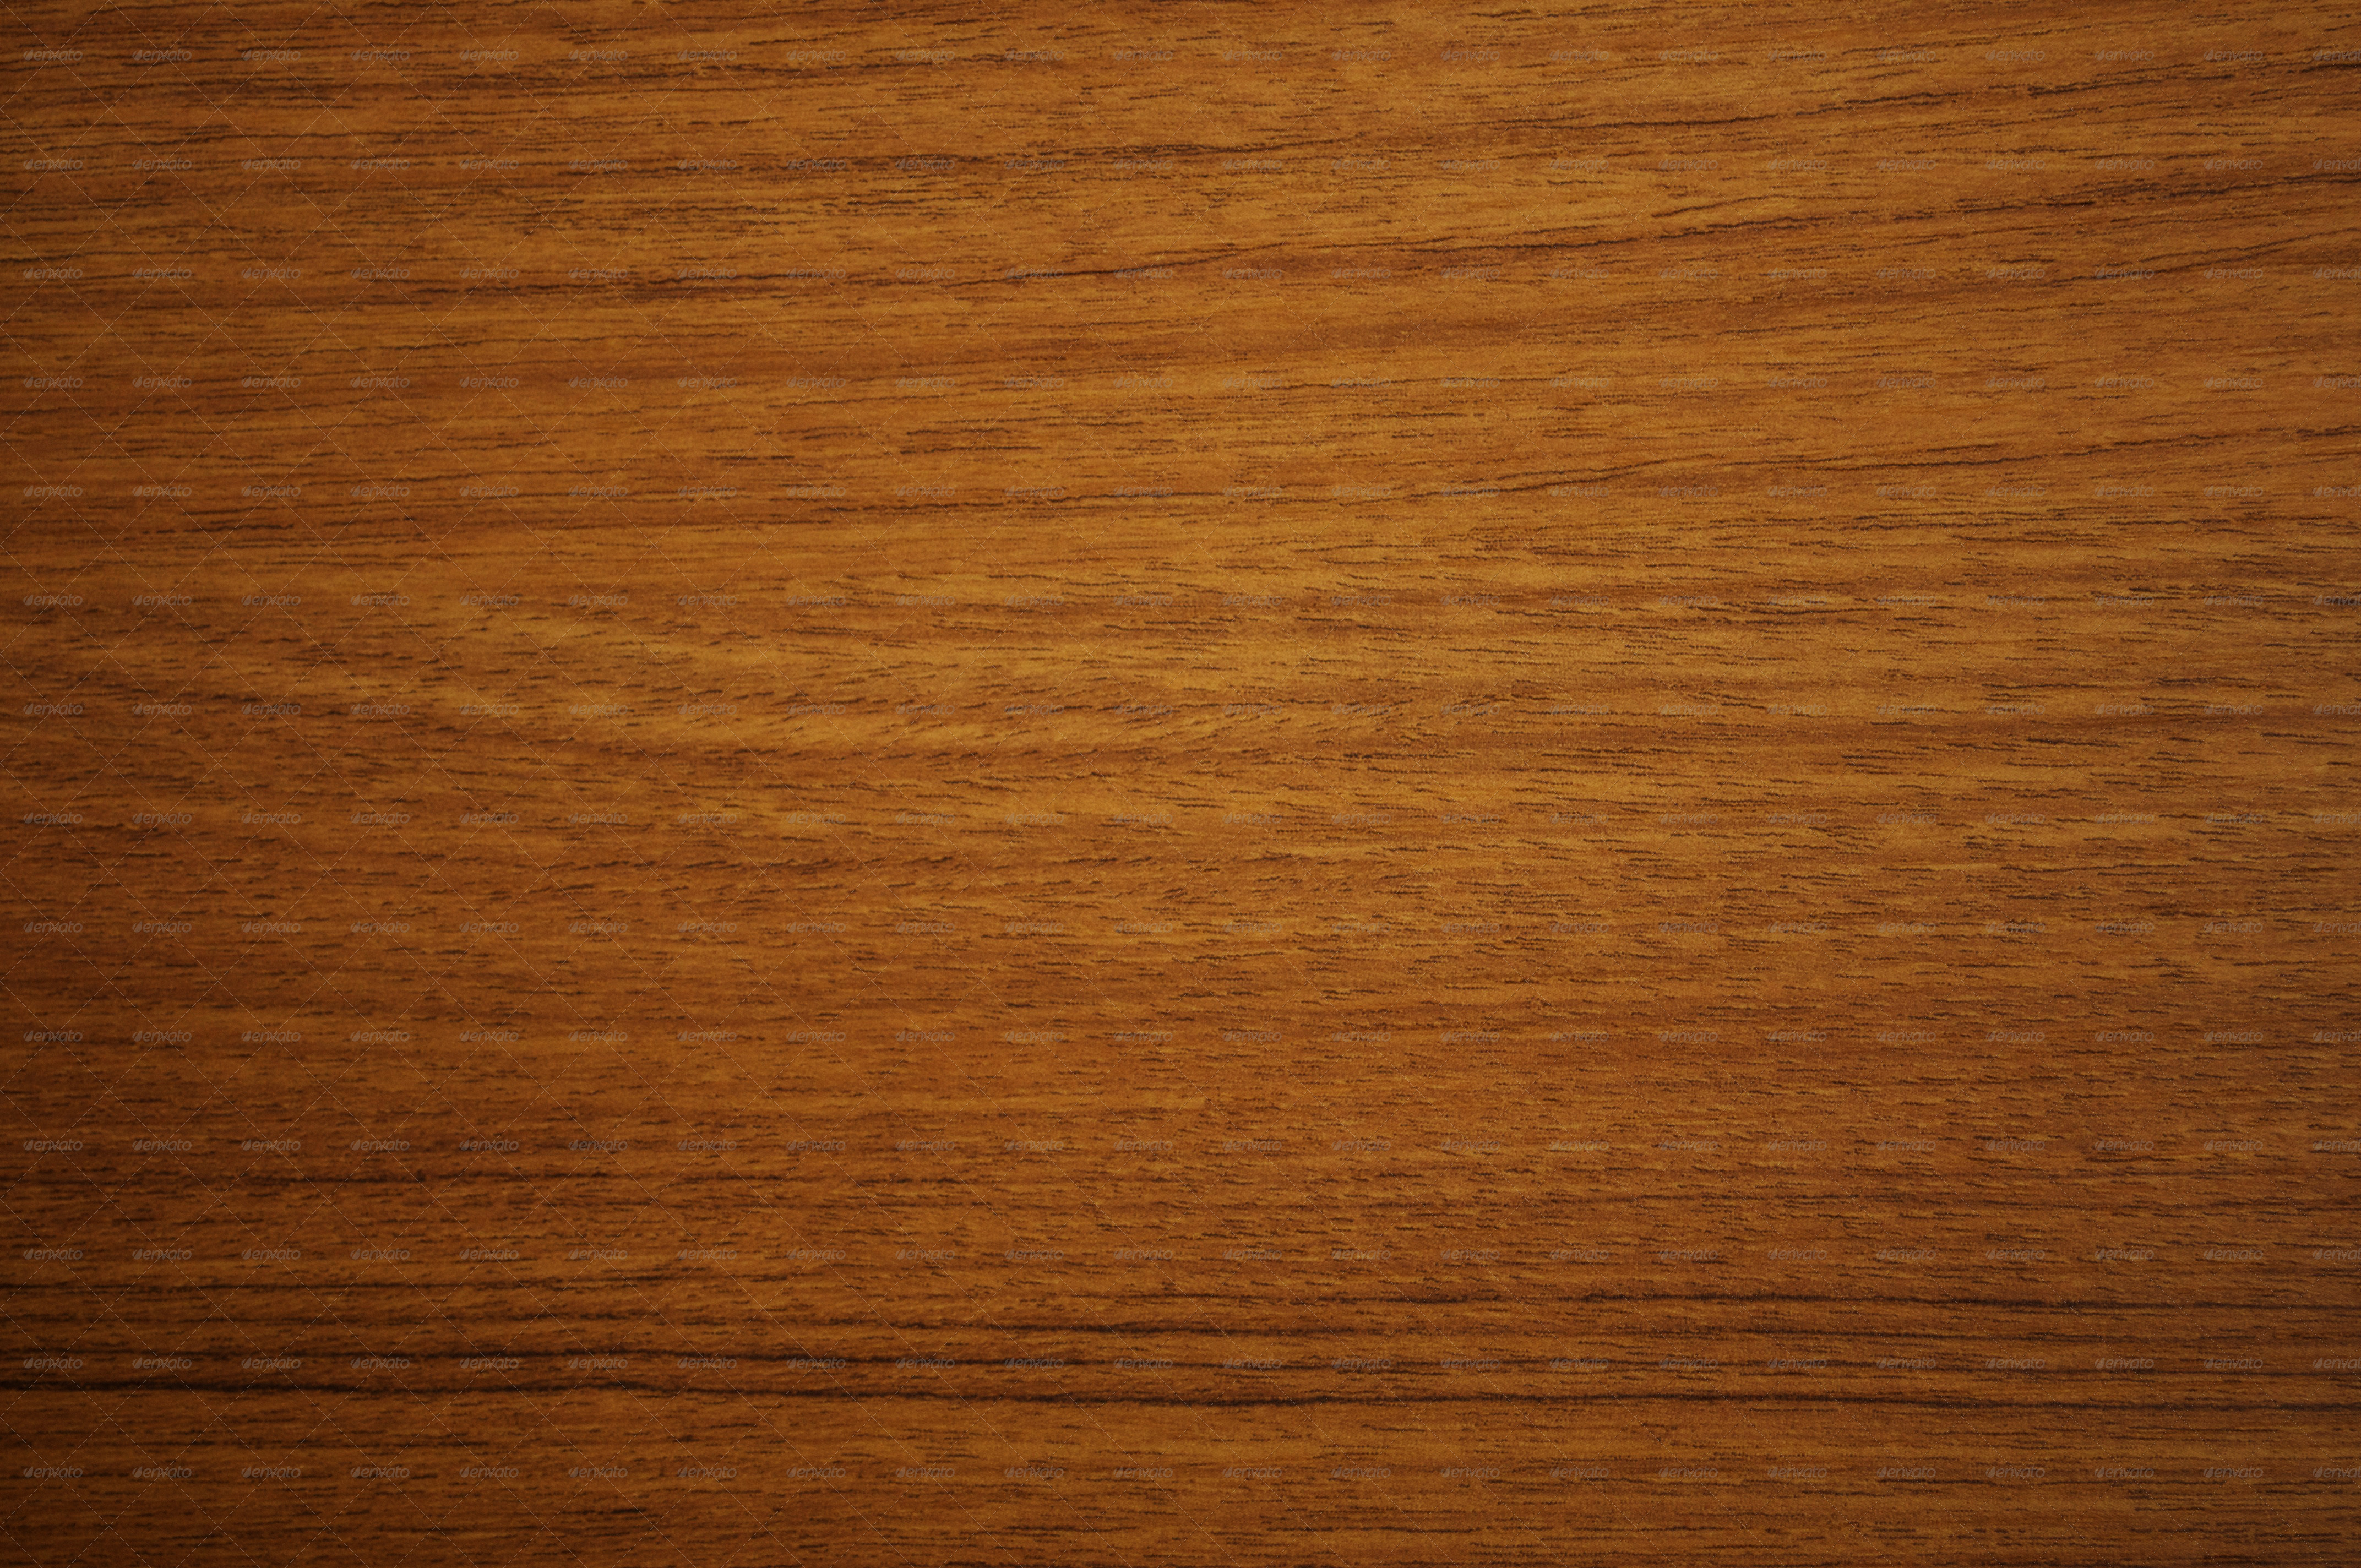 Pool table wood texture - Dark Brown Wood Texture